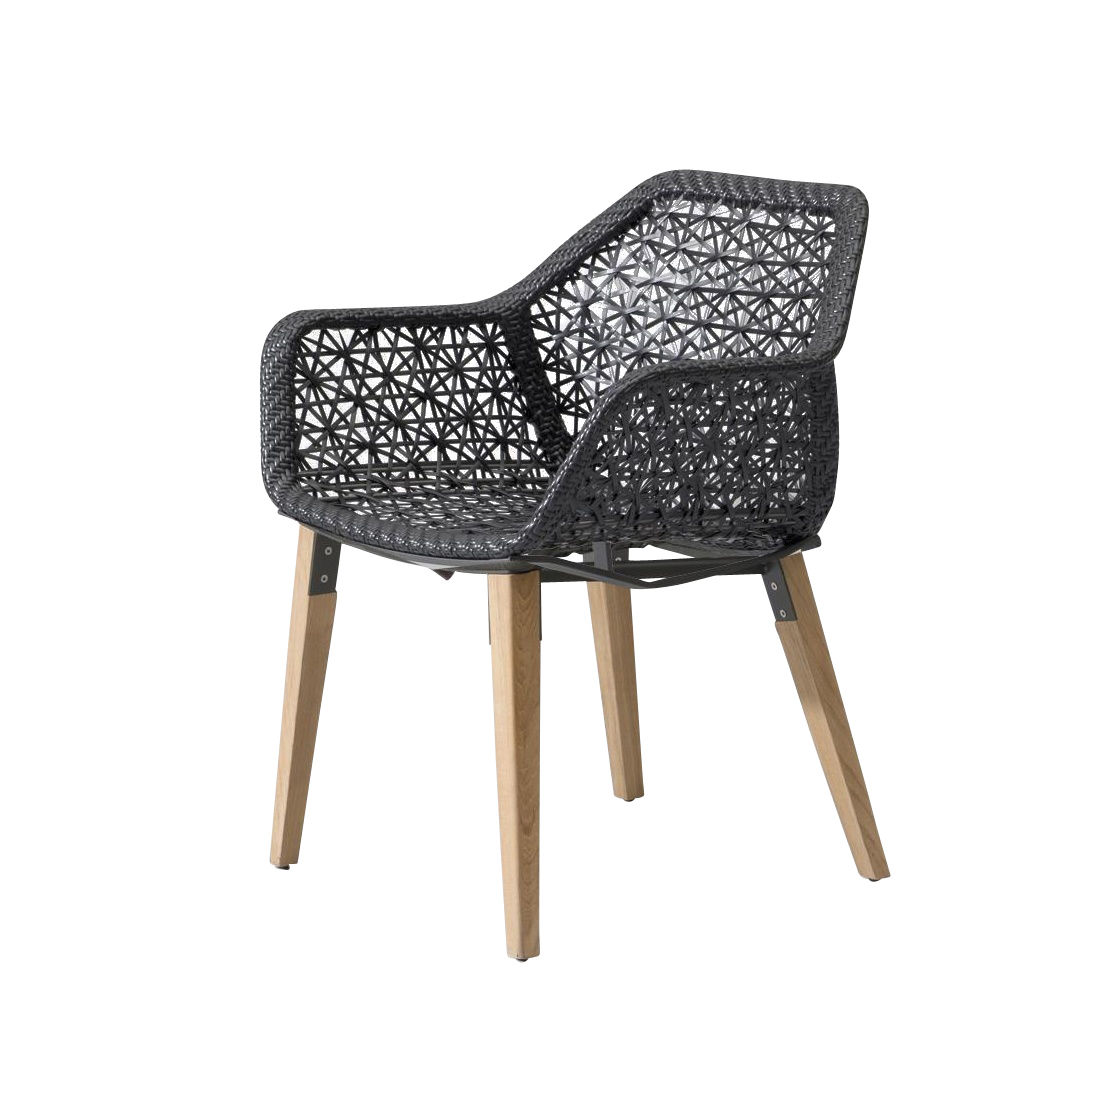 ... Kettal   Maia Garden Armchair Wooden Base   Black 726 Chesnut  Maia/plastic Rope/ ...